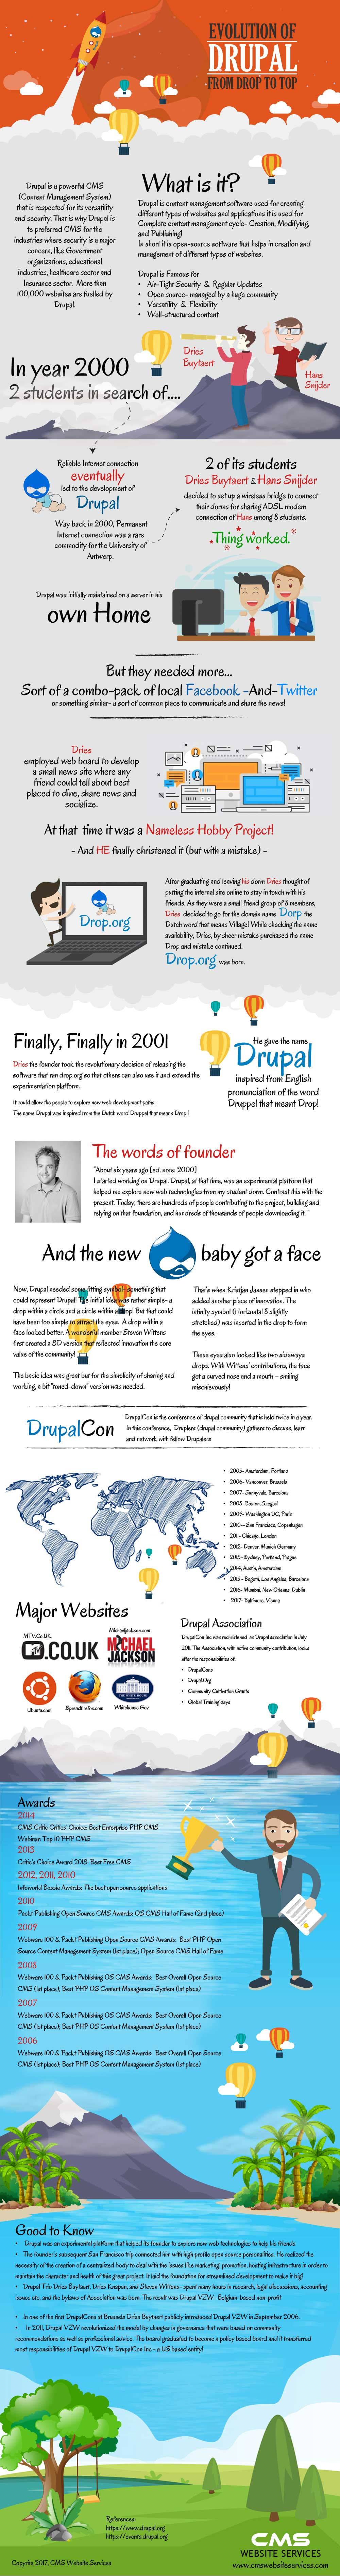 Evolution-Or-Drupal-From-Drop-To-Top